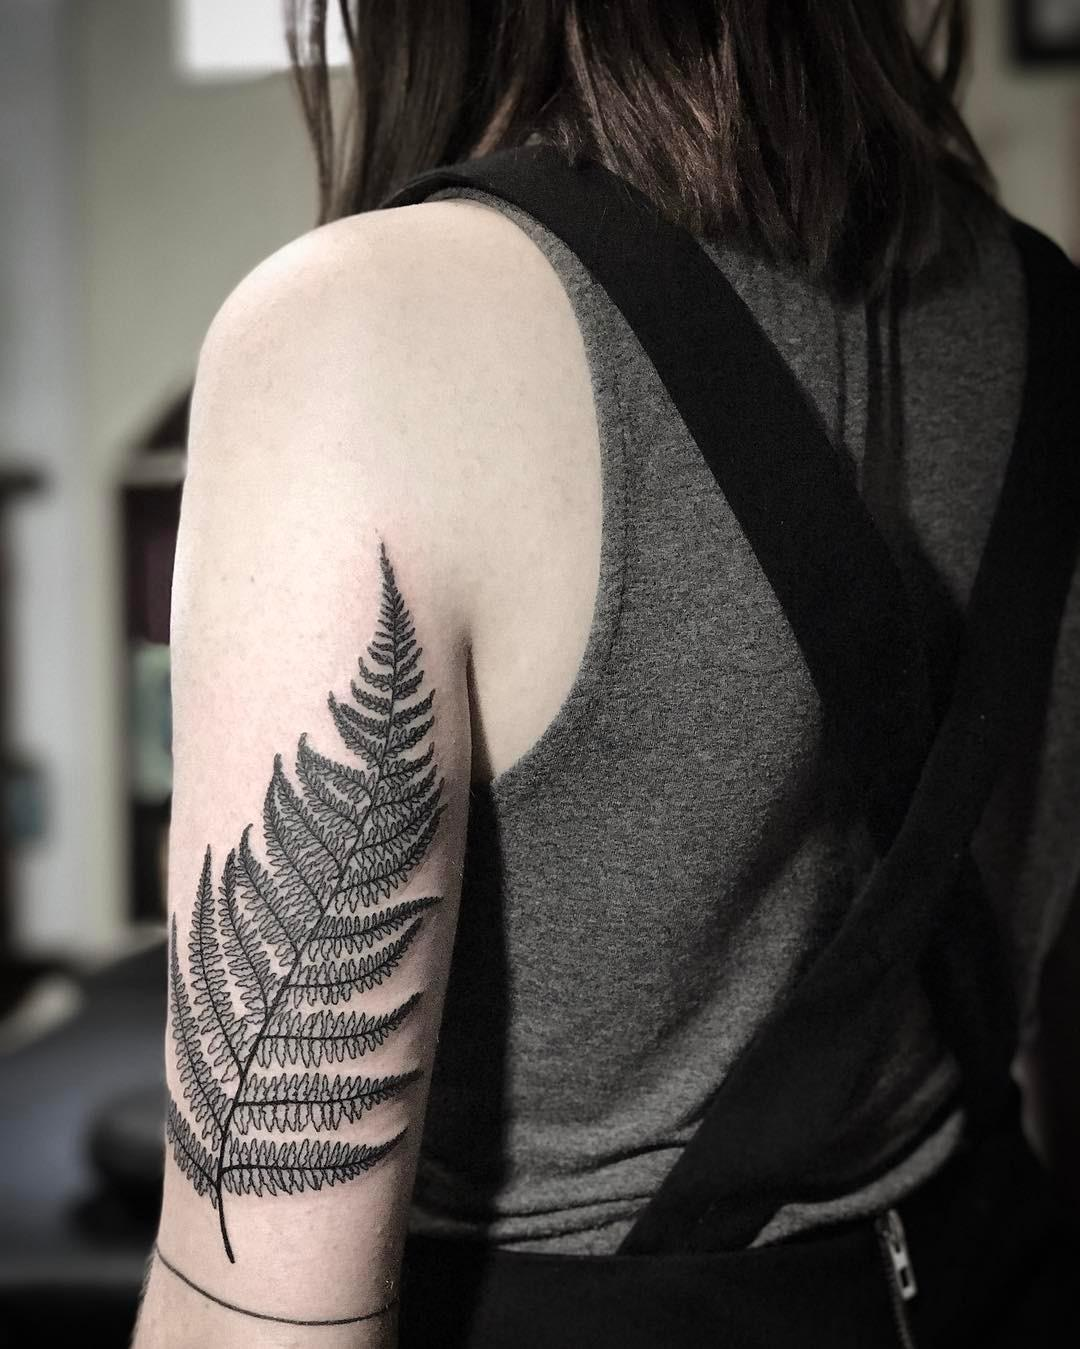 Fern on the left arm by @patcrump